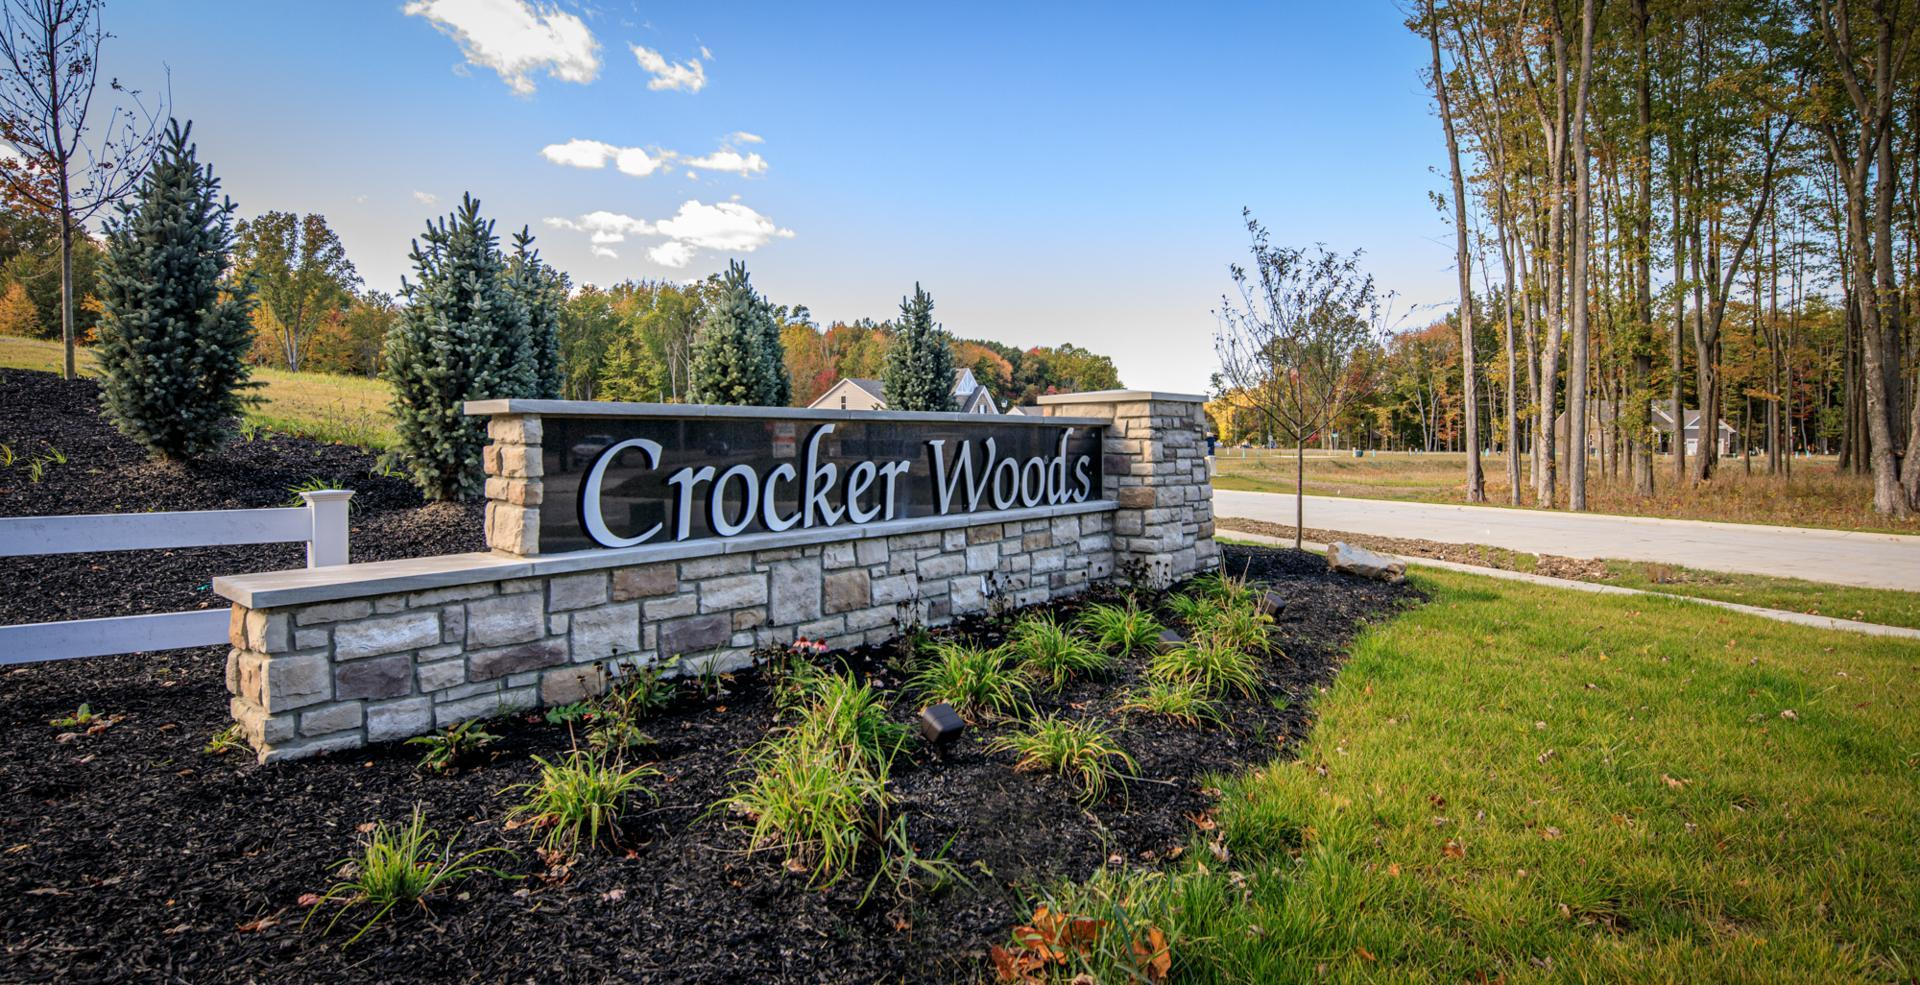 The Crocker Woods Entrance